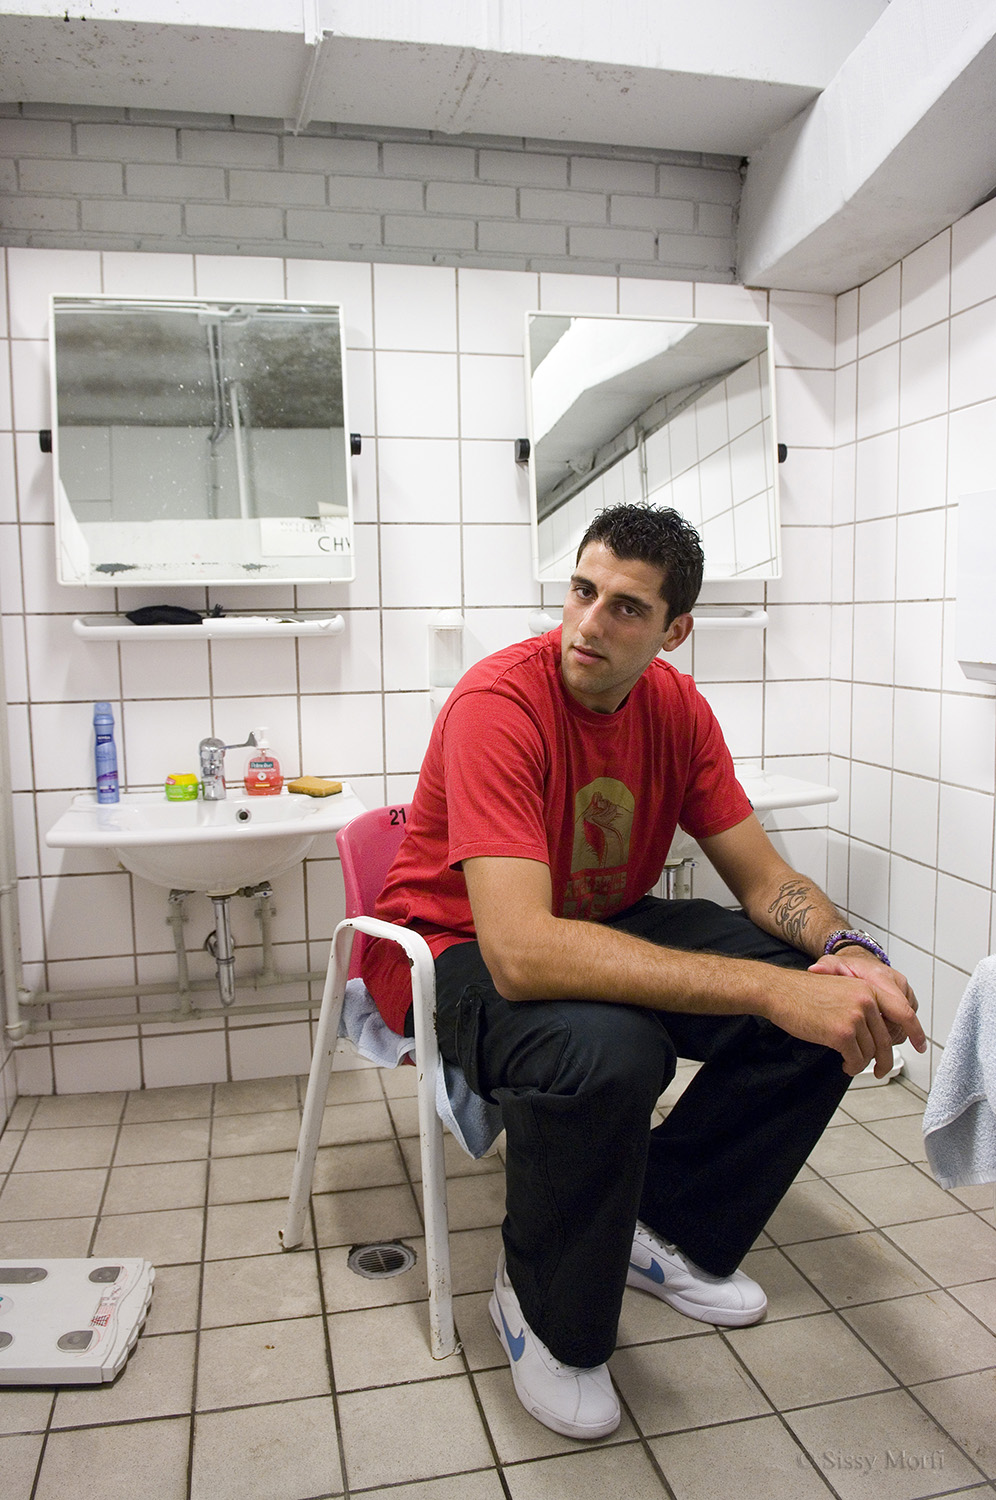 Yannis Boutousis / basketball player / ACTIVE Augoust 2008